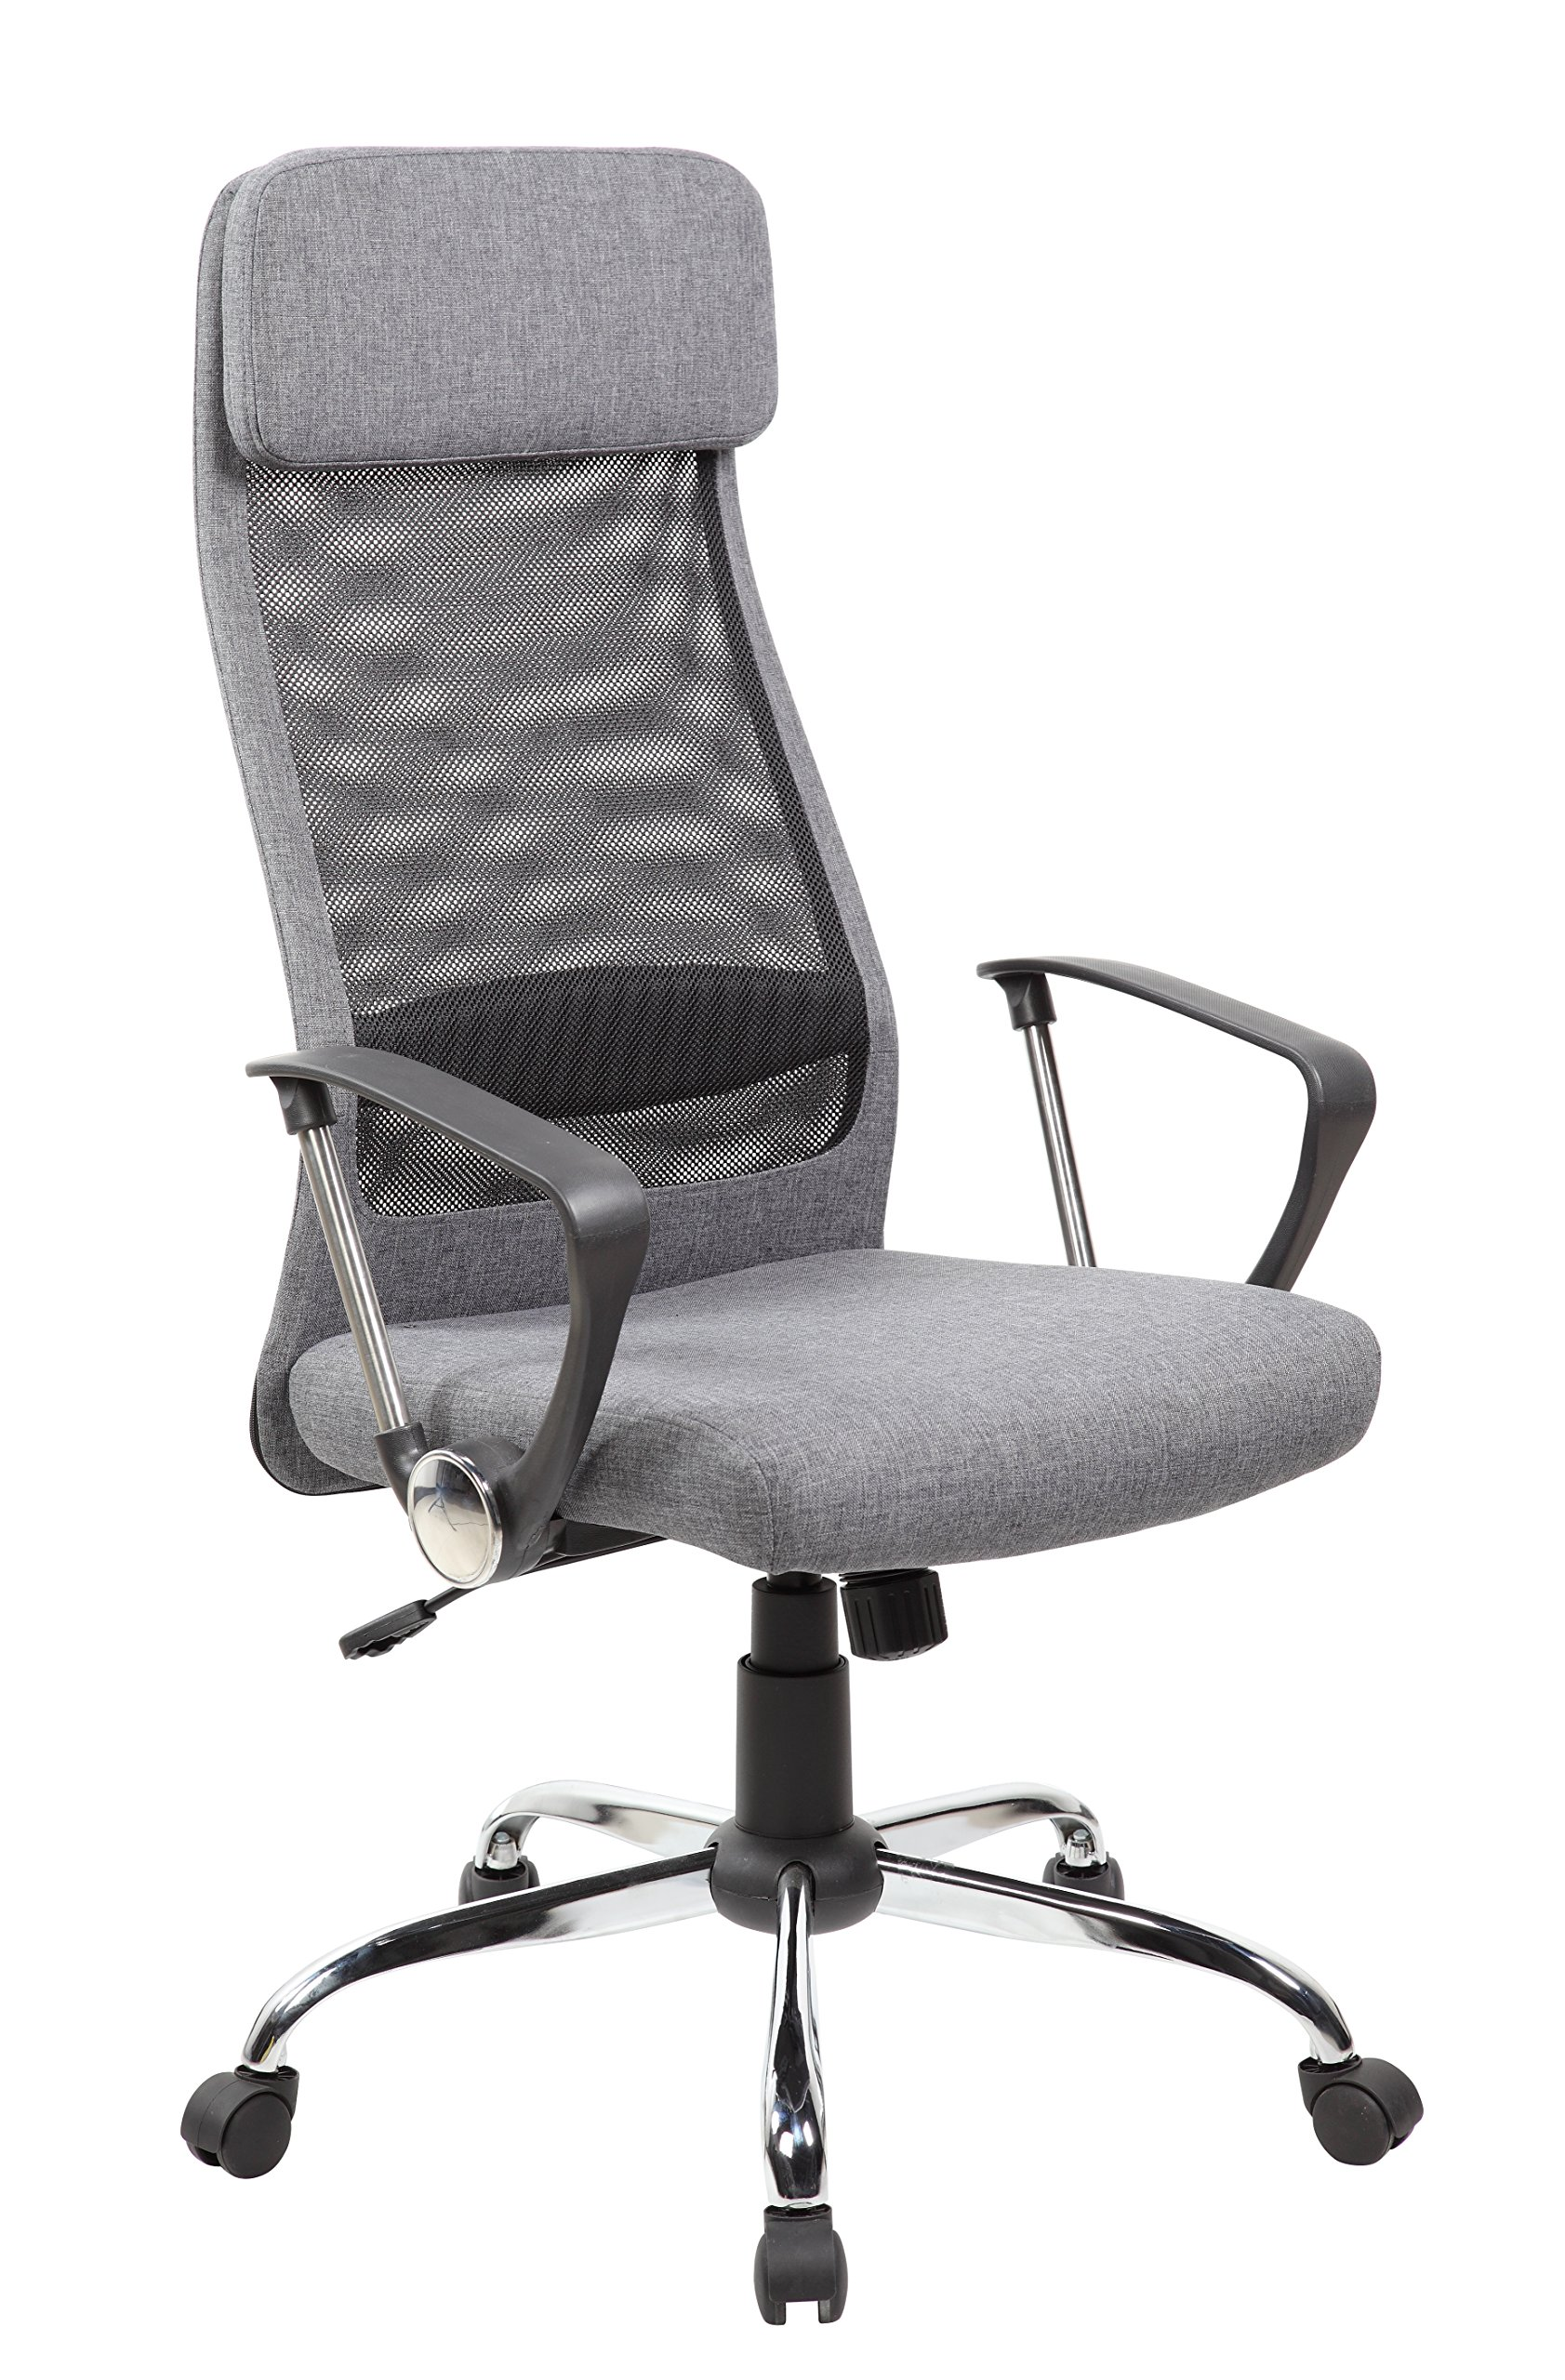 KERLAND High Back Mesh Ergonomic Swivel Adjustable Seat Height Padded Headrest Computer Desk Executive Office Chair With Arms, Gray by KERLAND